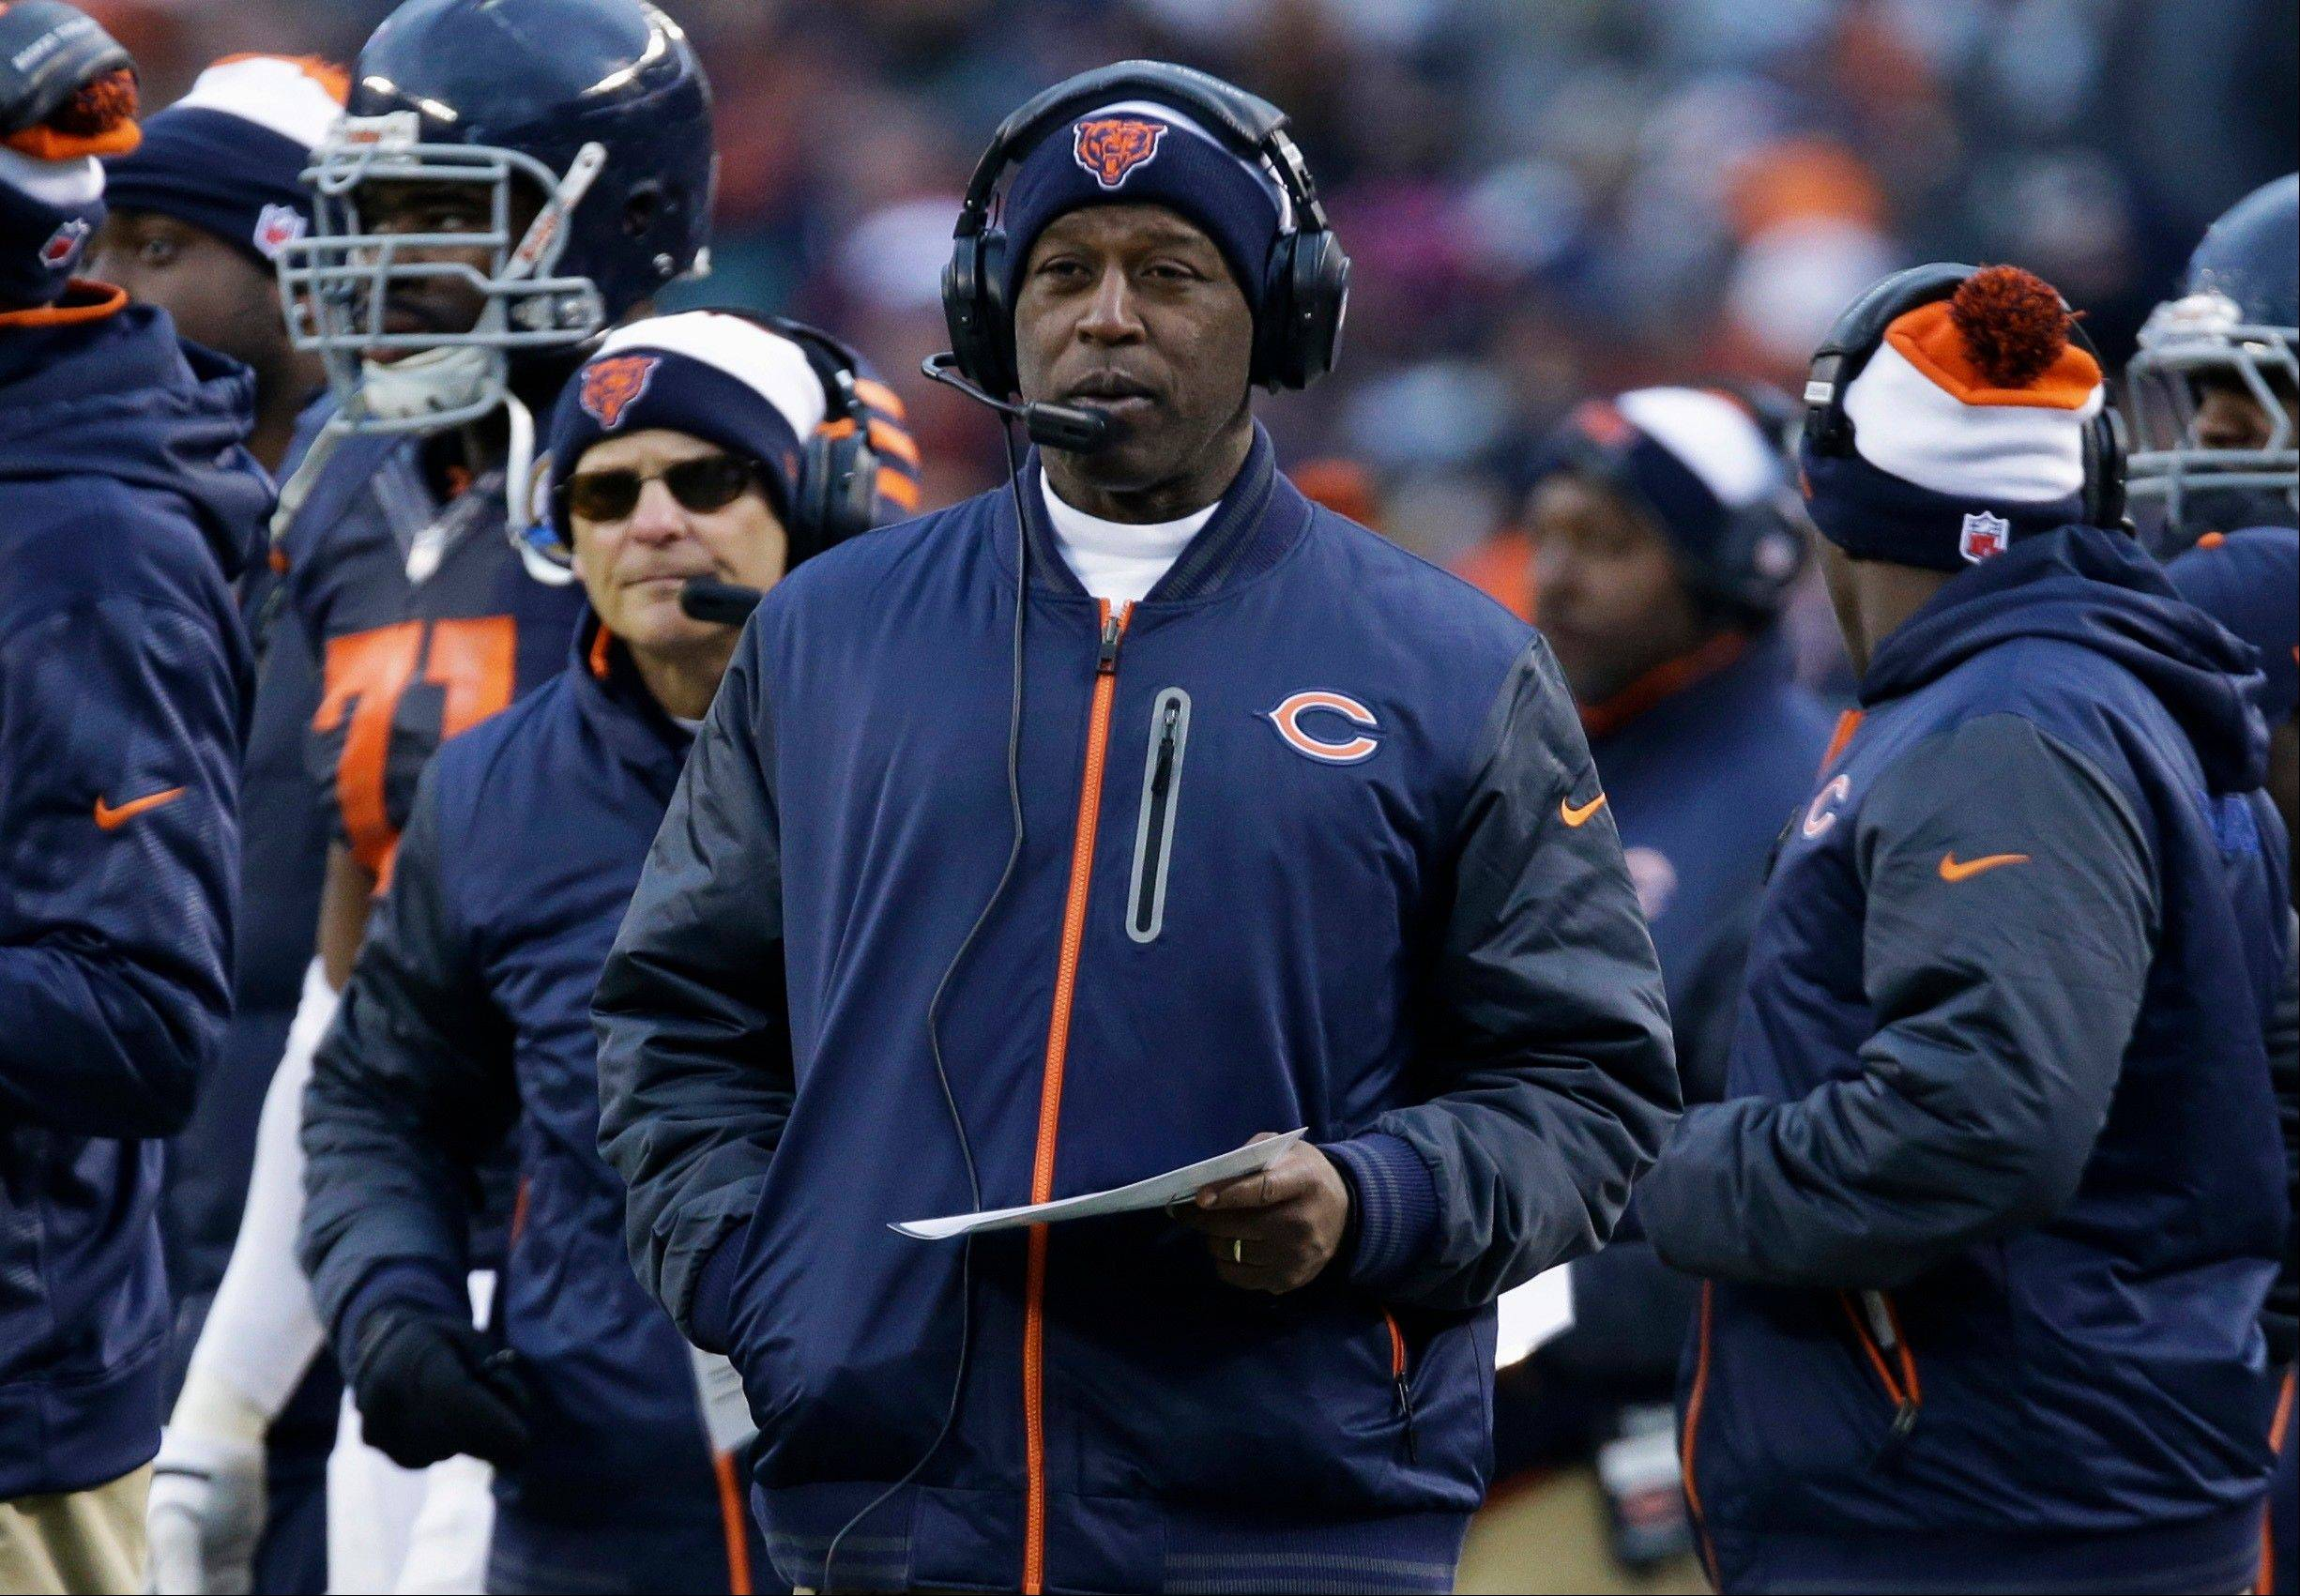 Bears coach Lovie Smith watches the action against the Green Bay Packers in the second half Sunday at Soldier Field.